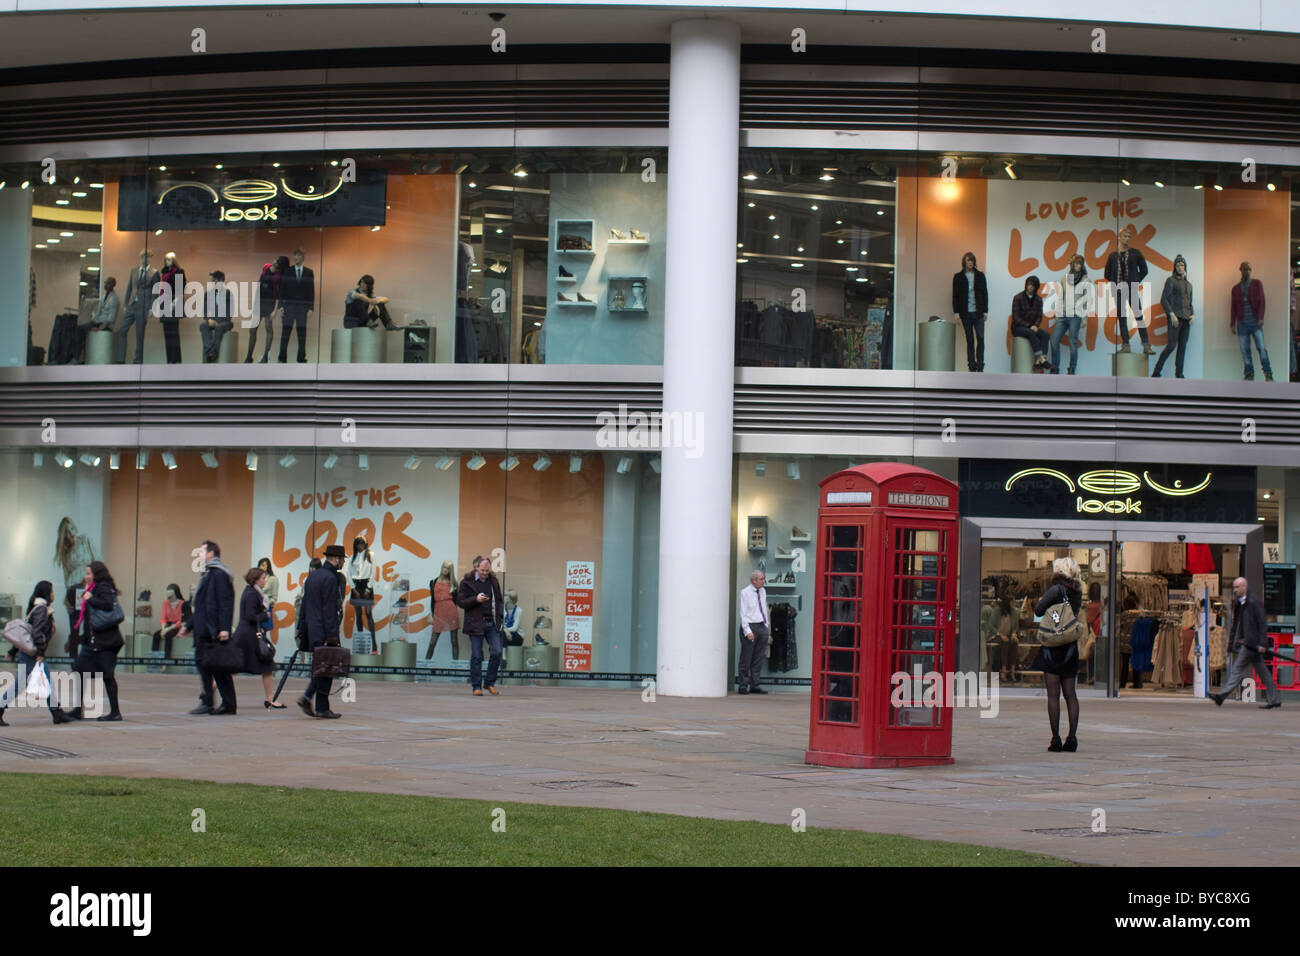 New Look retail fashion outlet moorgate - Stock Image